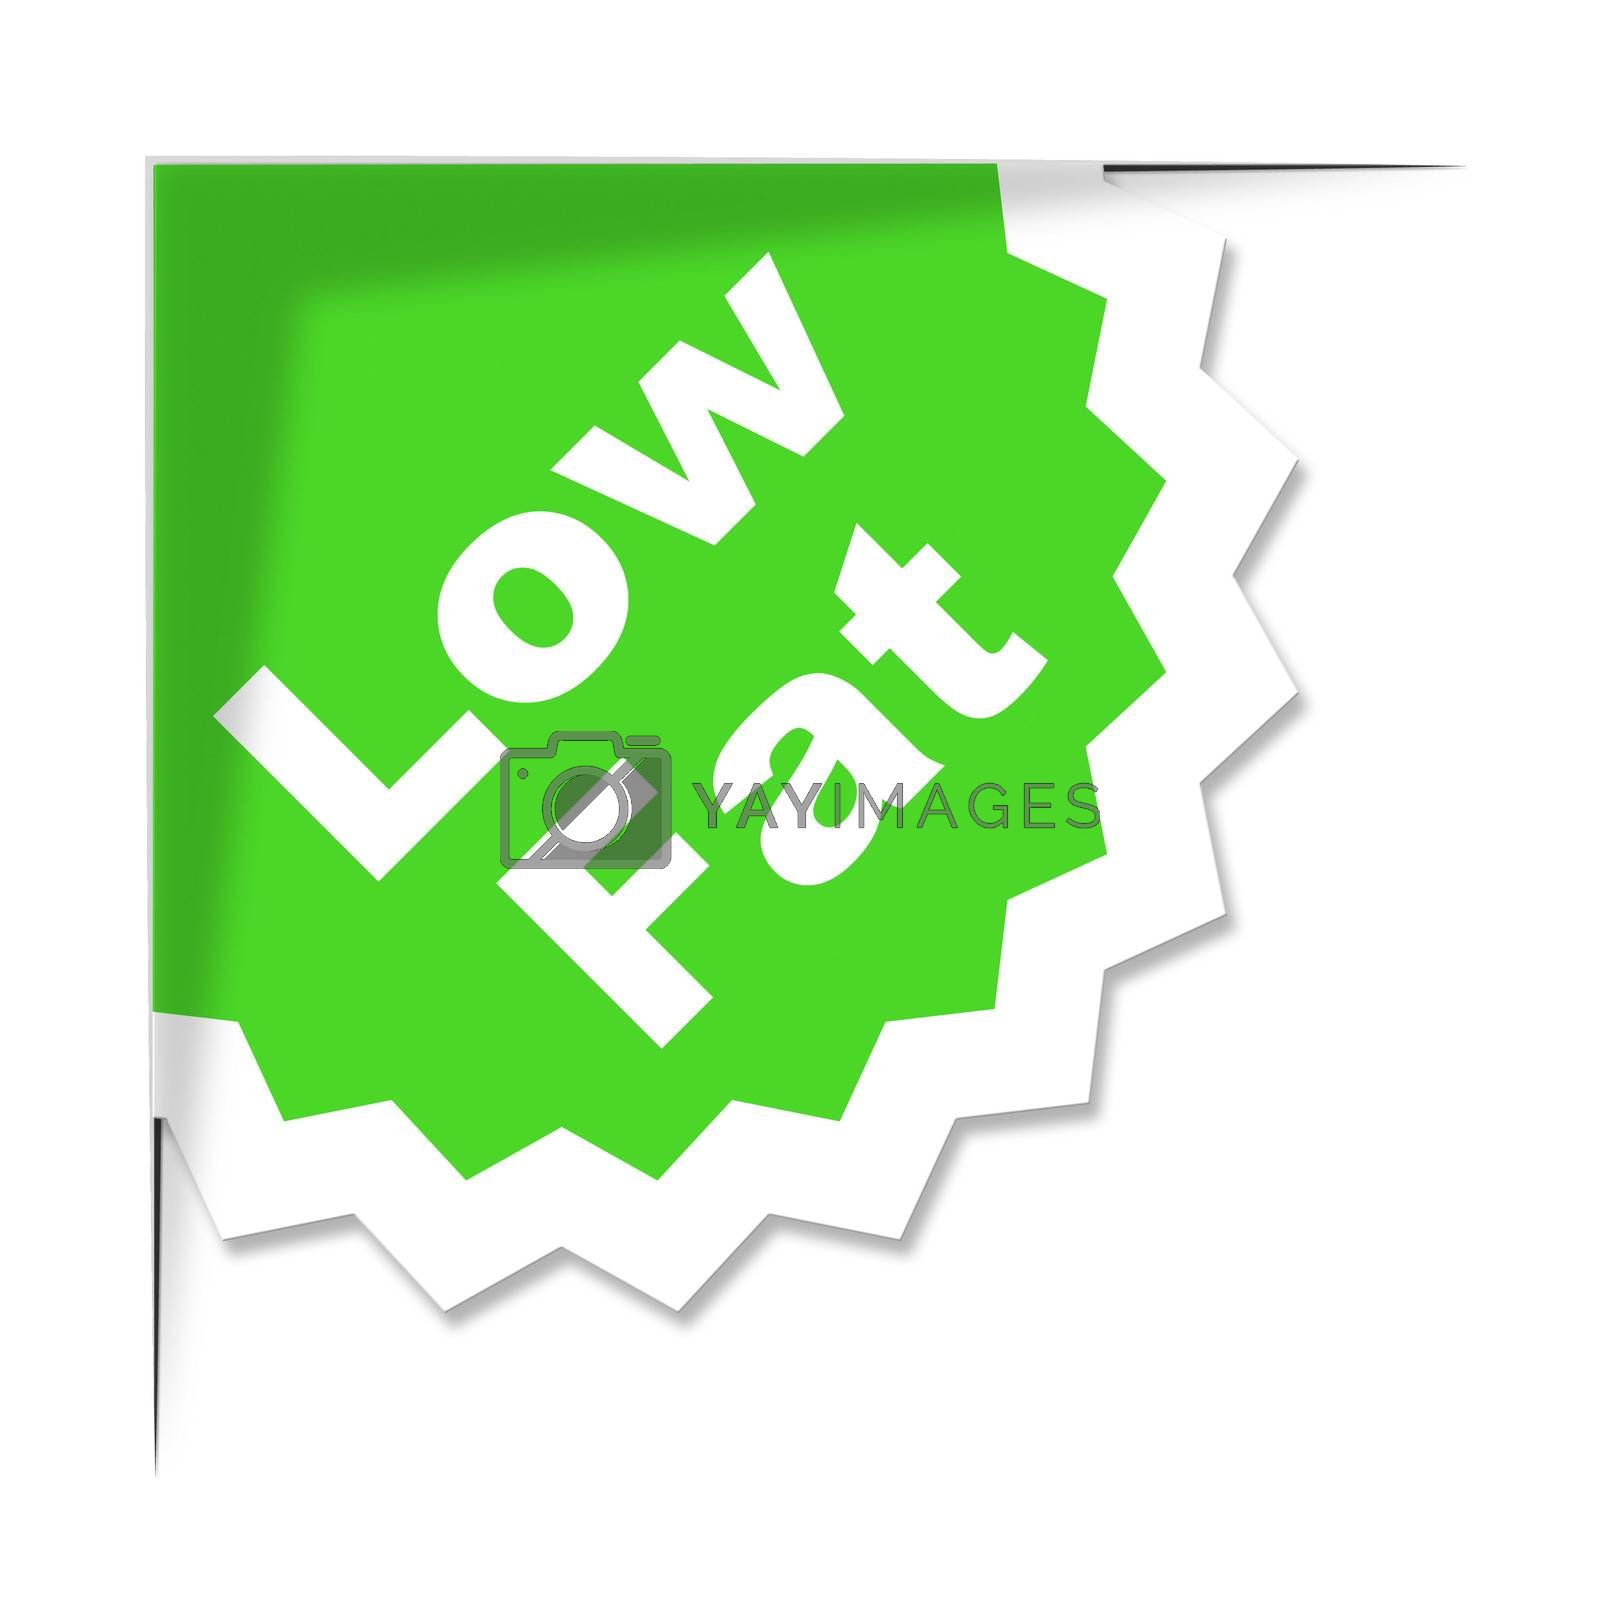 Low Fat Label Represents Weight Loss And Diets by stuartmiles